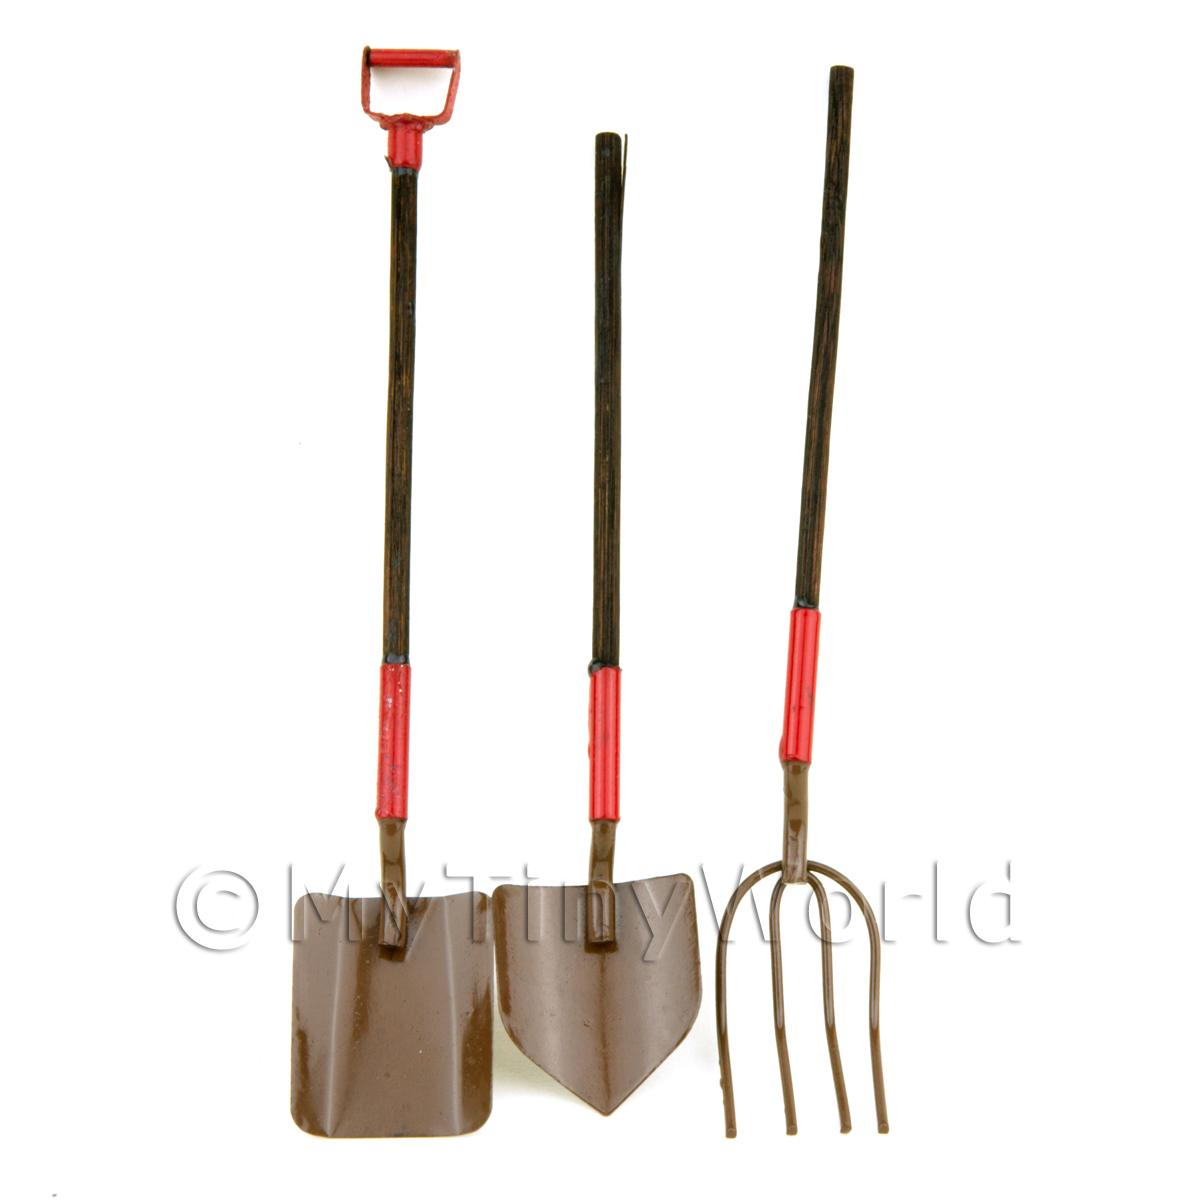 Dolls House Miniature 3 Piece Long Handle Garden Tool Set